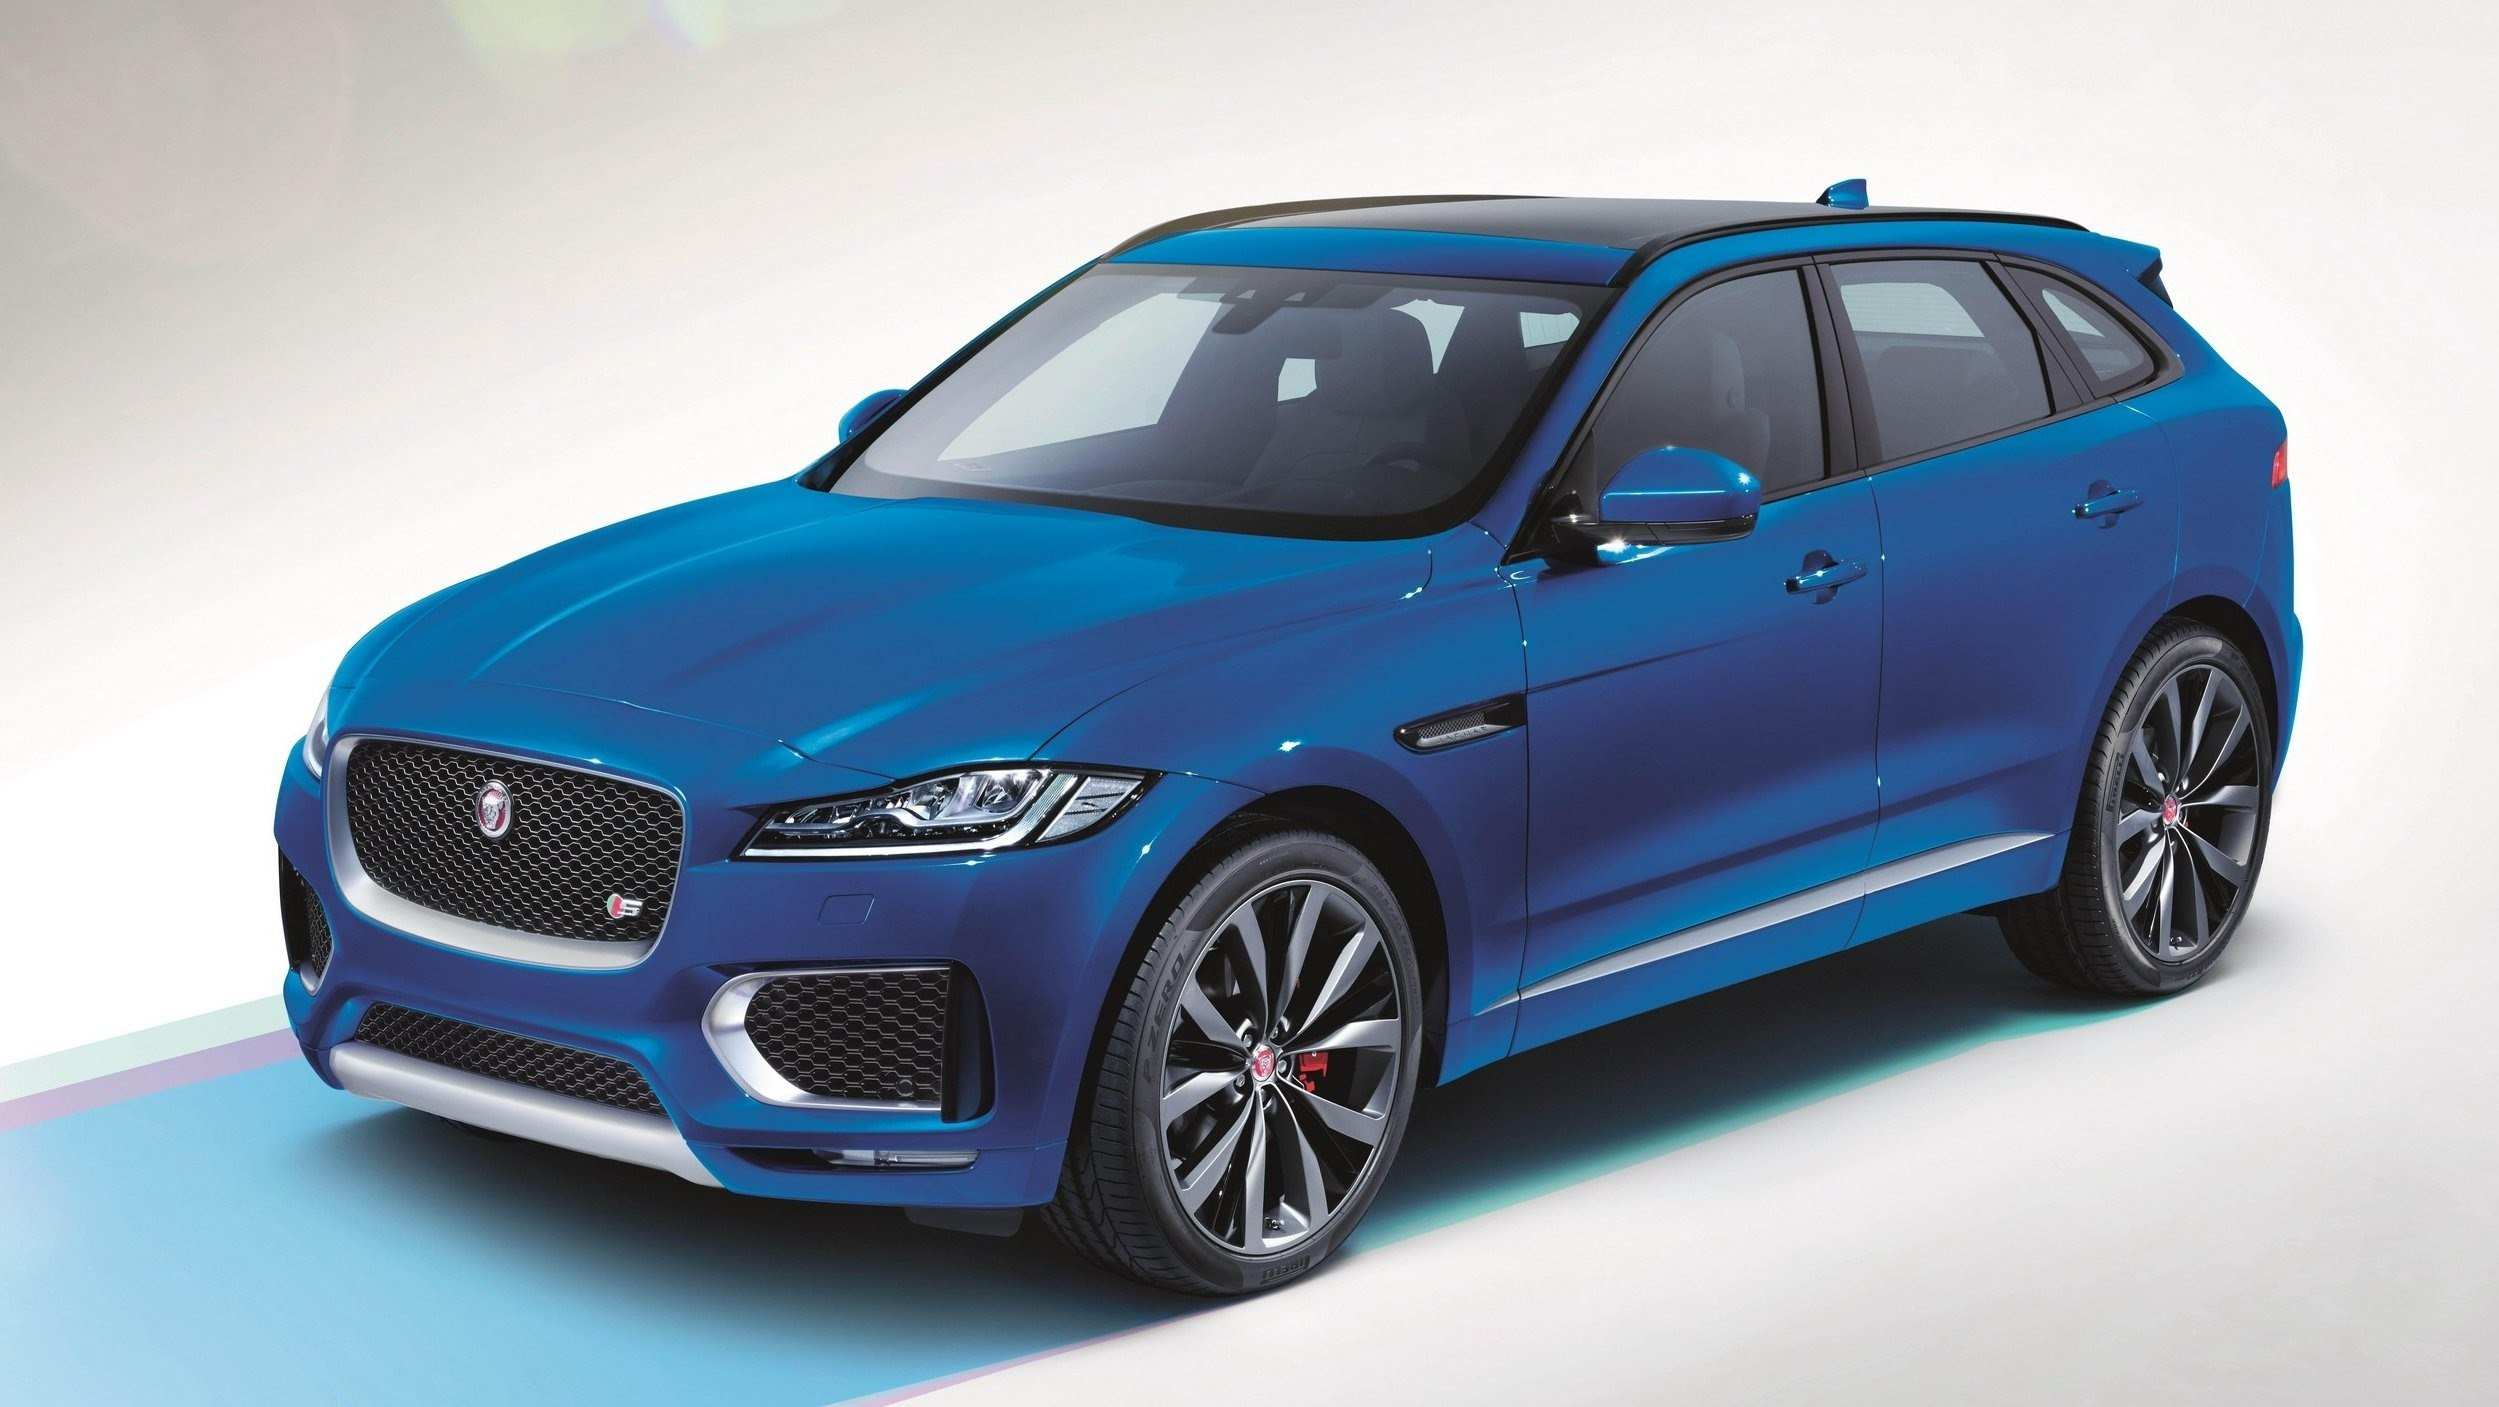 76 The Best 2020 Jaguar C X17 Crossover Specs